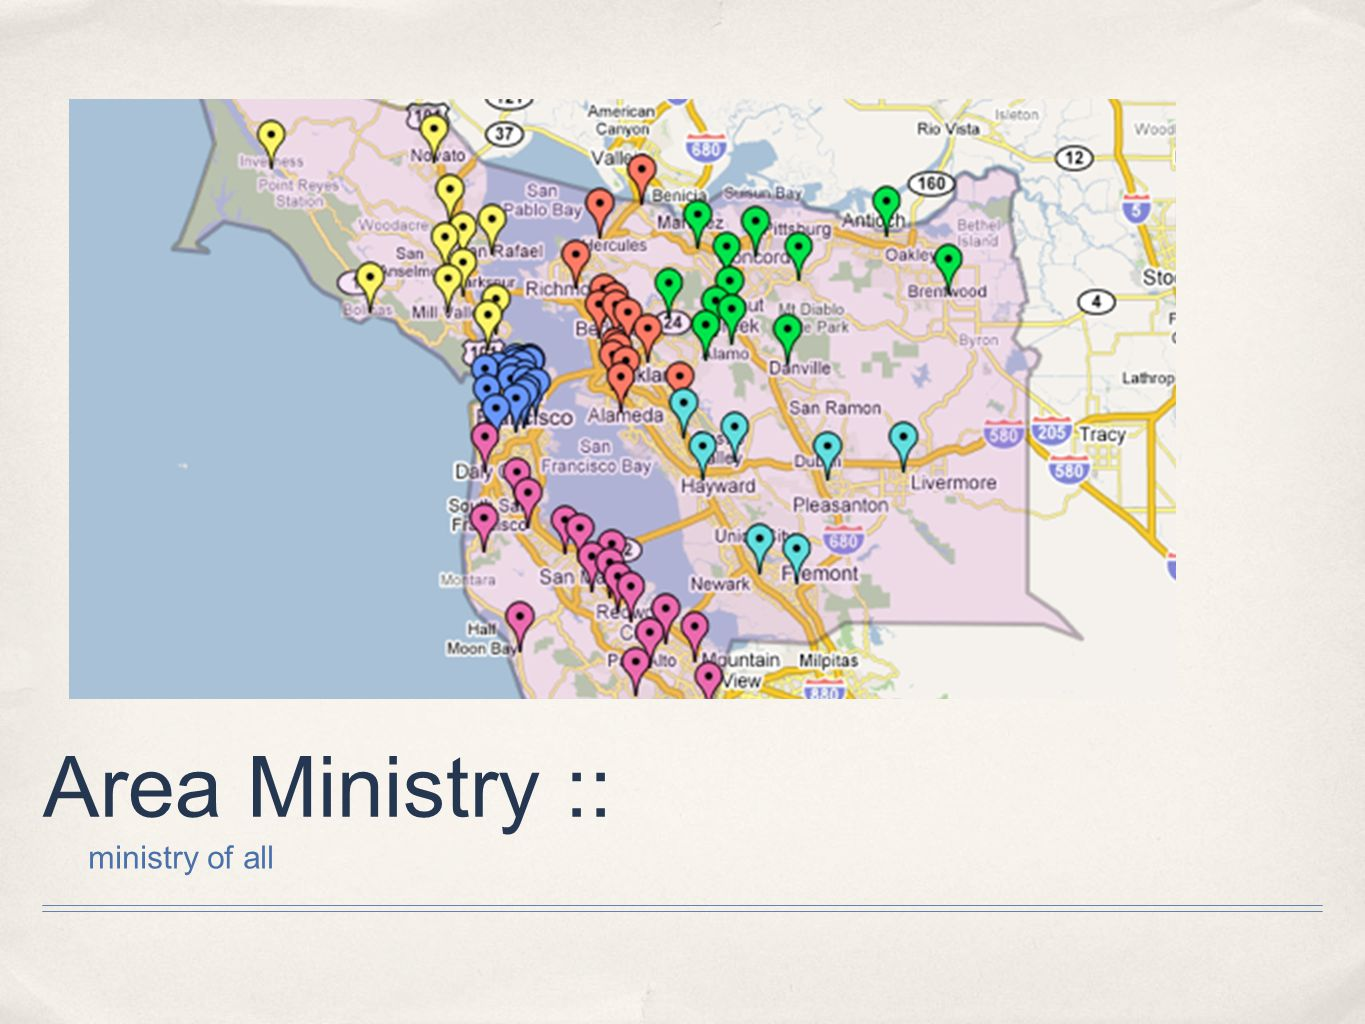 Area Ministry :: ministry of all